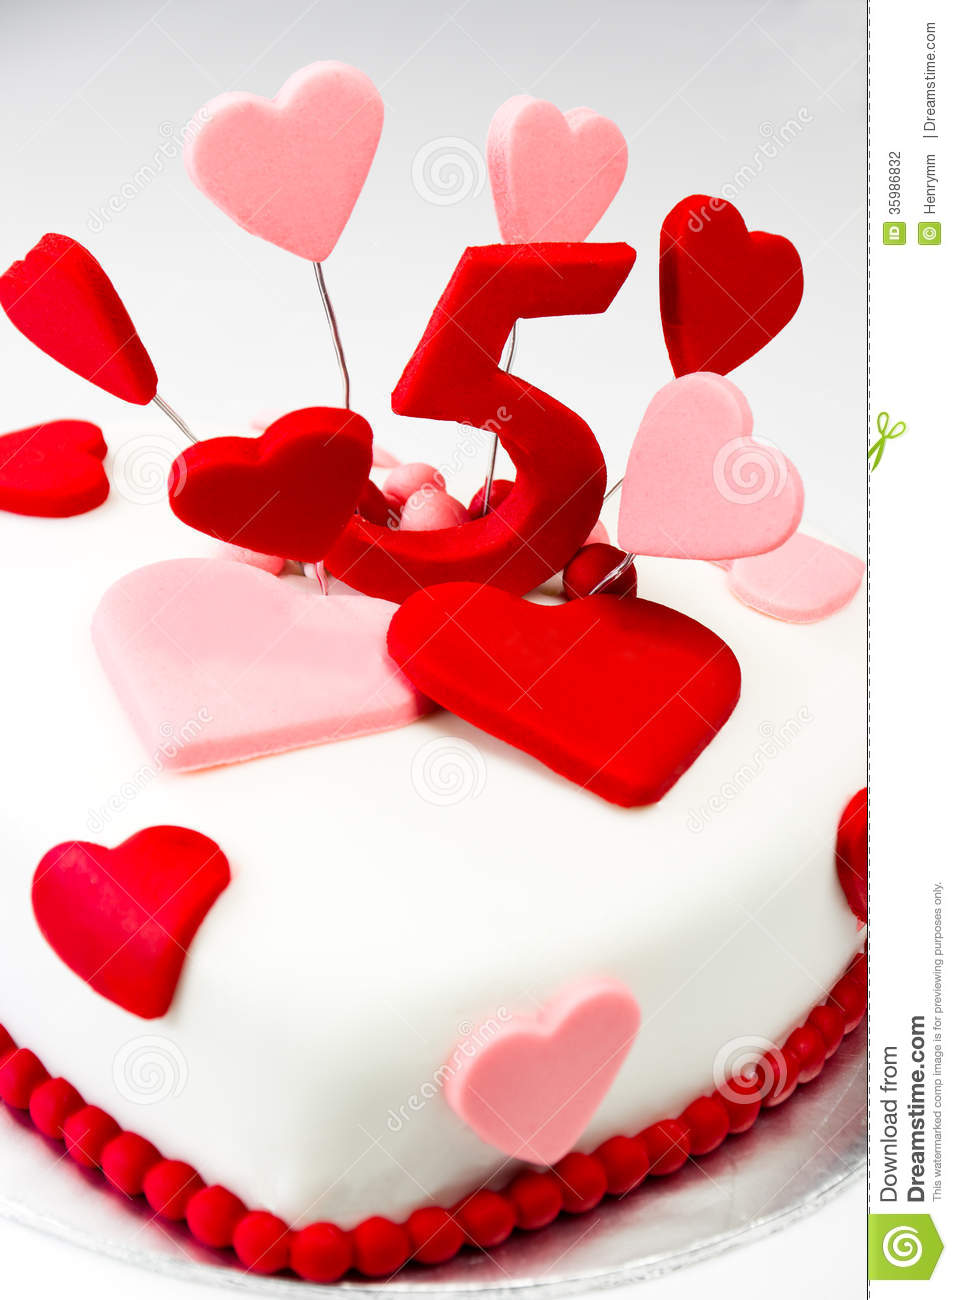 Love Shape Cake Decoration : Valentines Cake Stock Photography - Image: 35986832